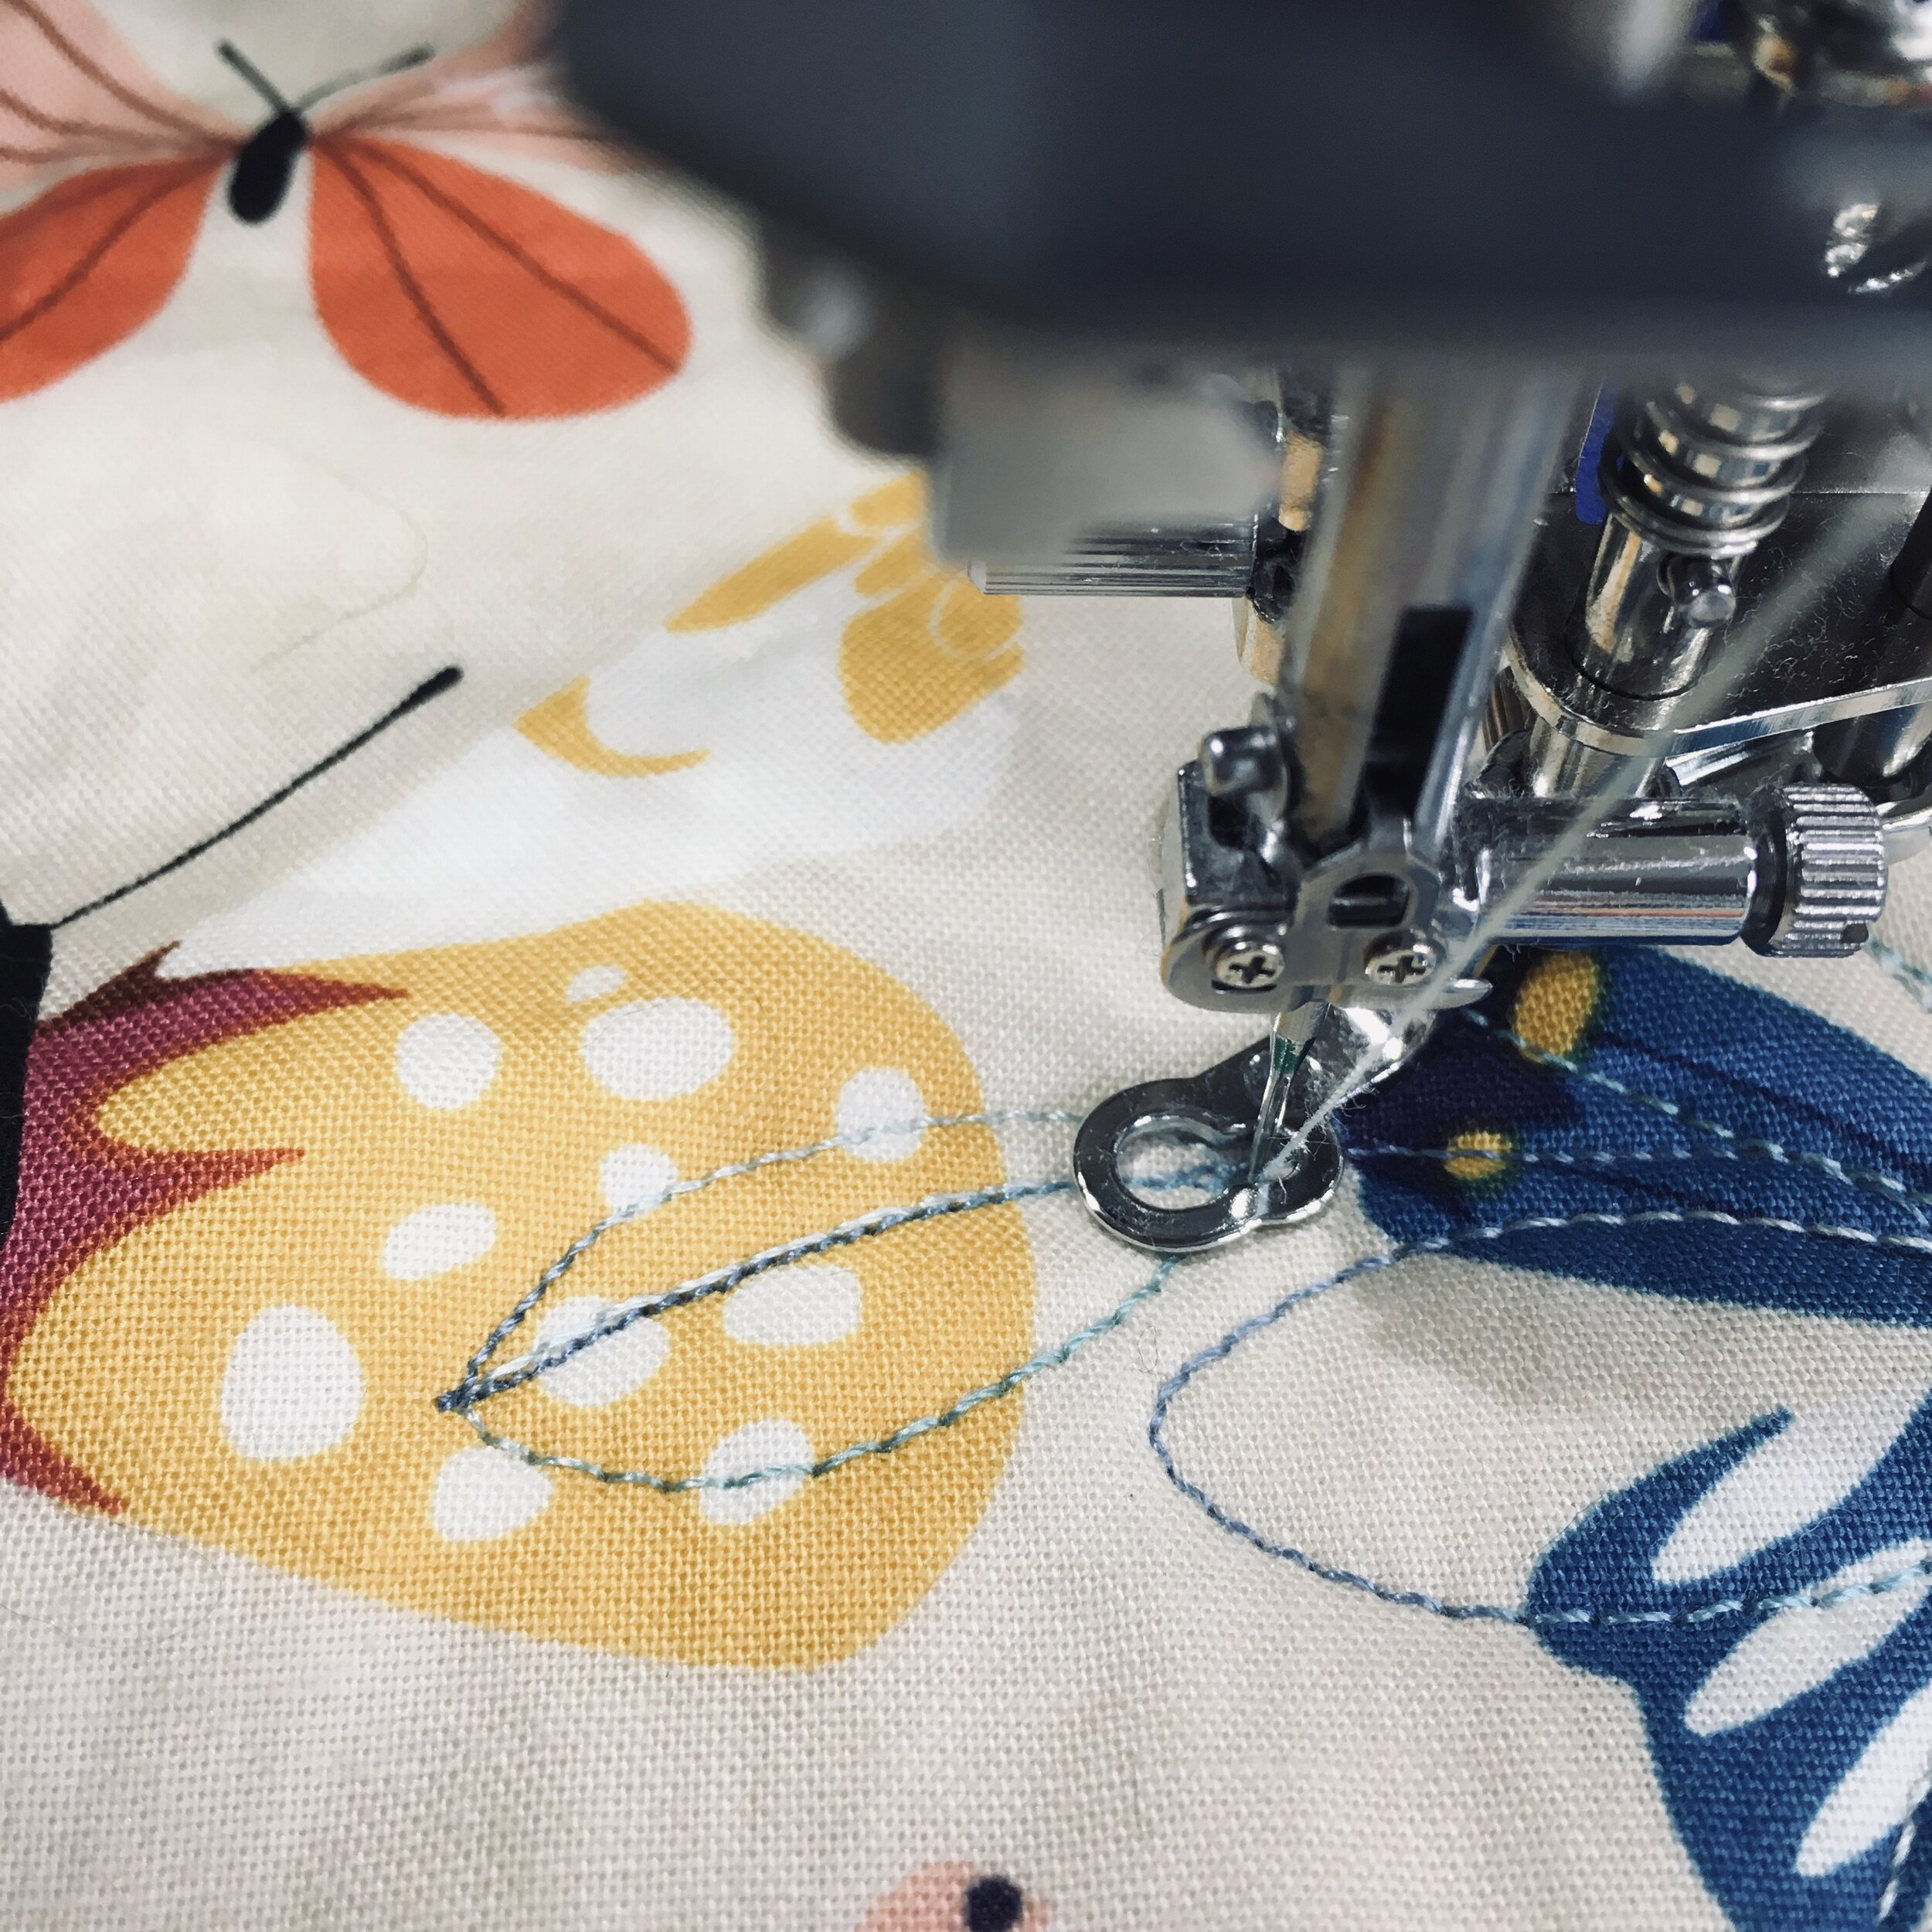 Travel stitching back along the stitches in the center of the leaf